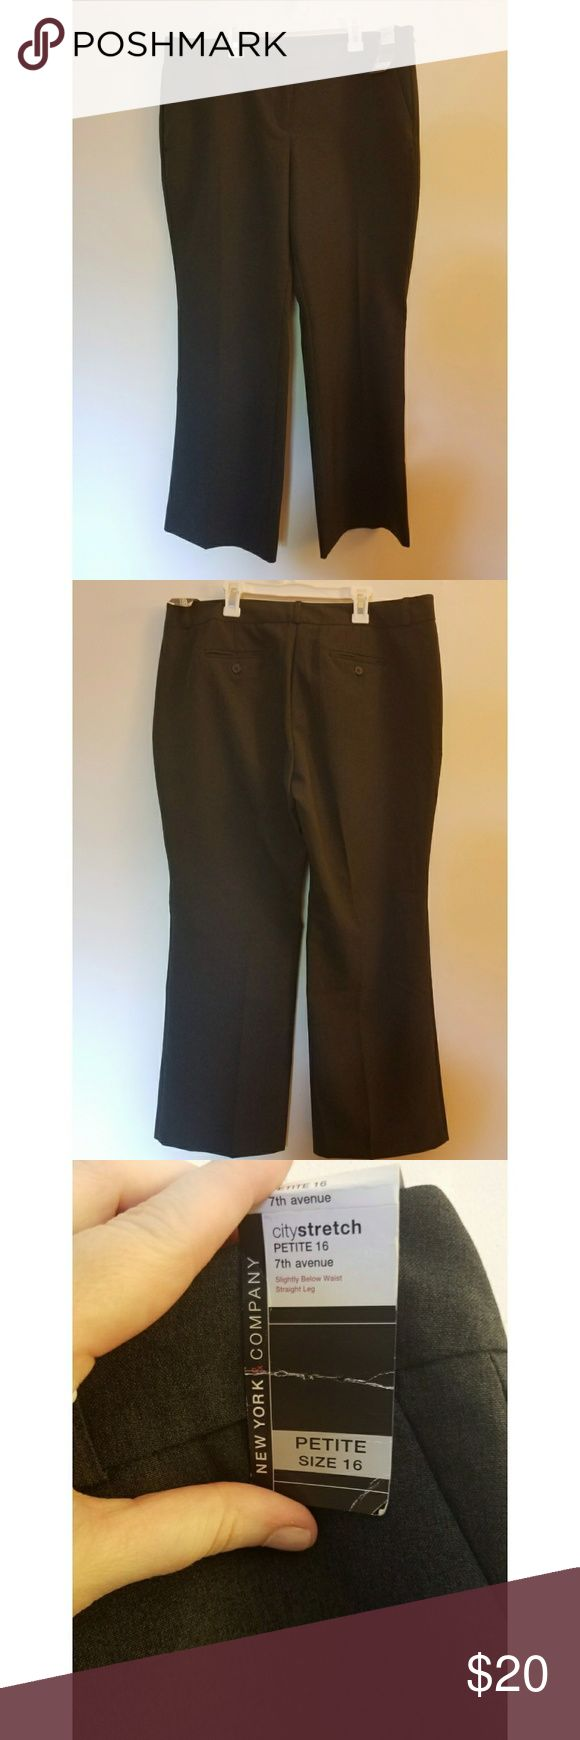 """NWT New York and Company Charcoal Grey Dress Pants Re-Posh. NWT 16P charcoal grey dress pants. The pants fit more like a 14P, and were a tad too short for me. I'm 5'4 1/2"""", so petite size pants can be a gamble for me. New York & Company Pants Boot Cut & Flare"""